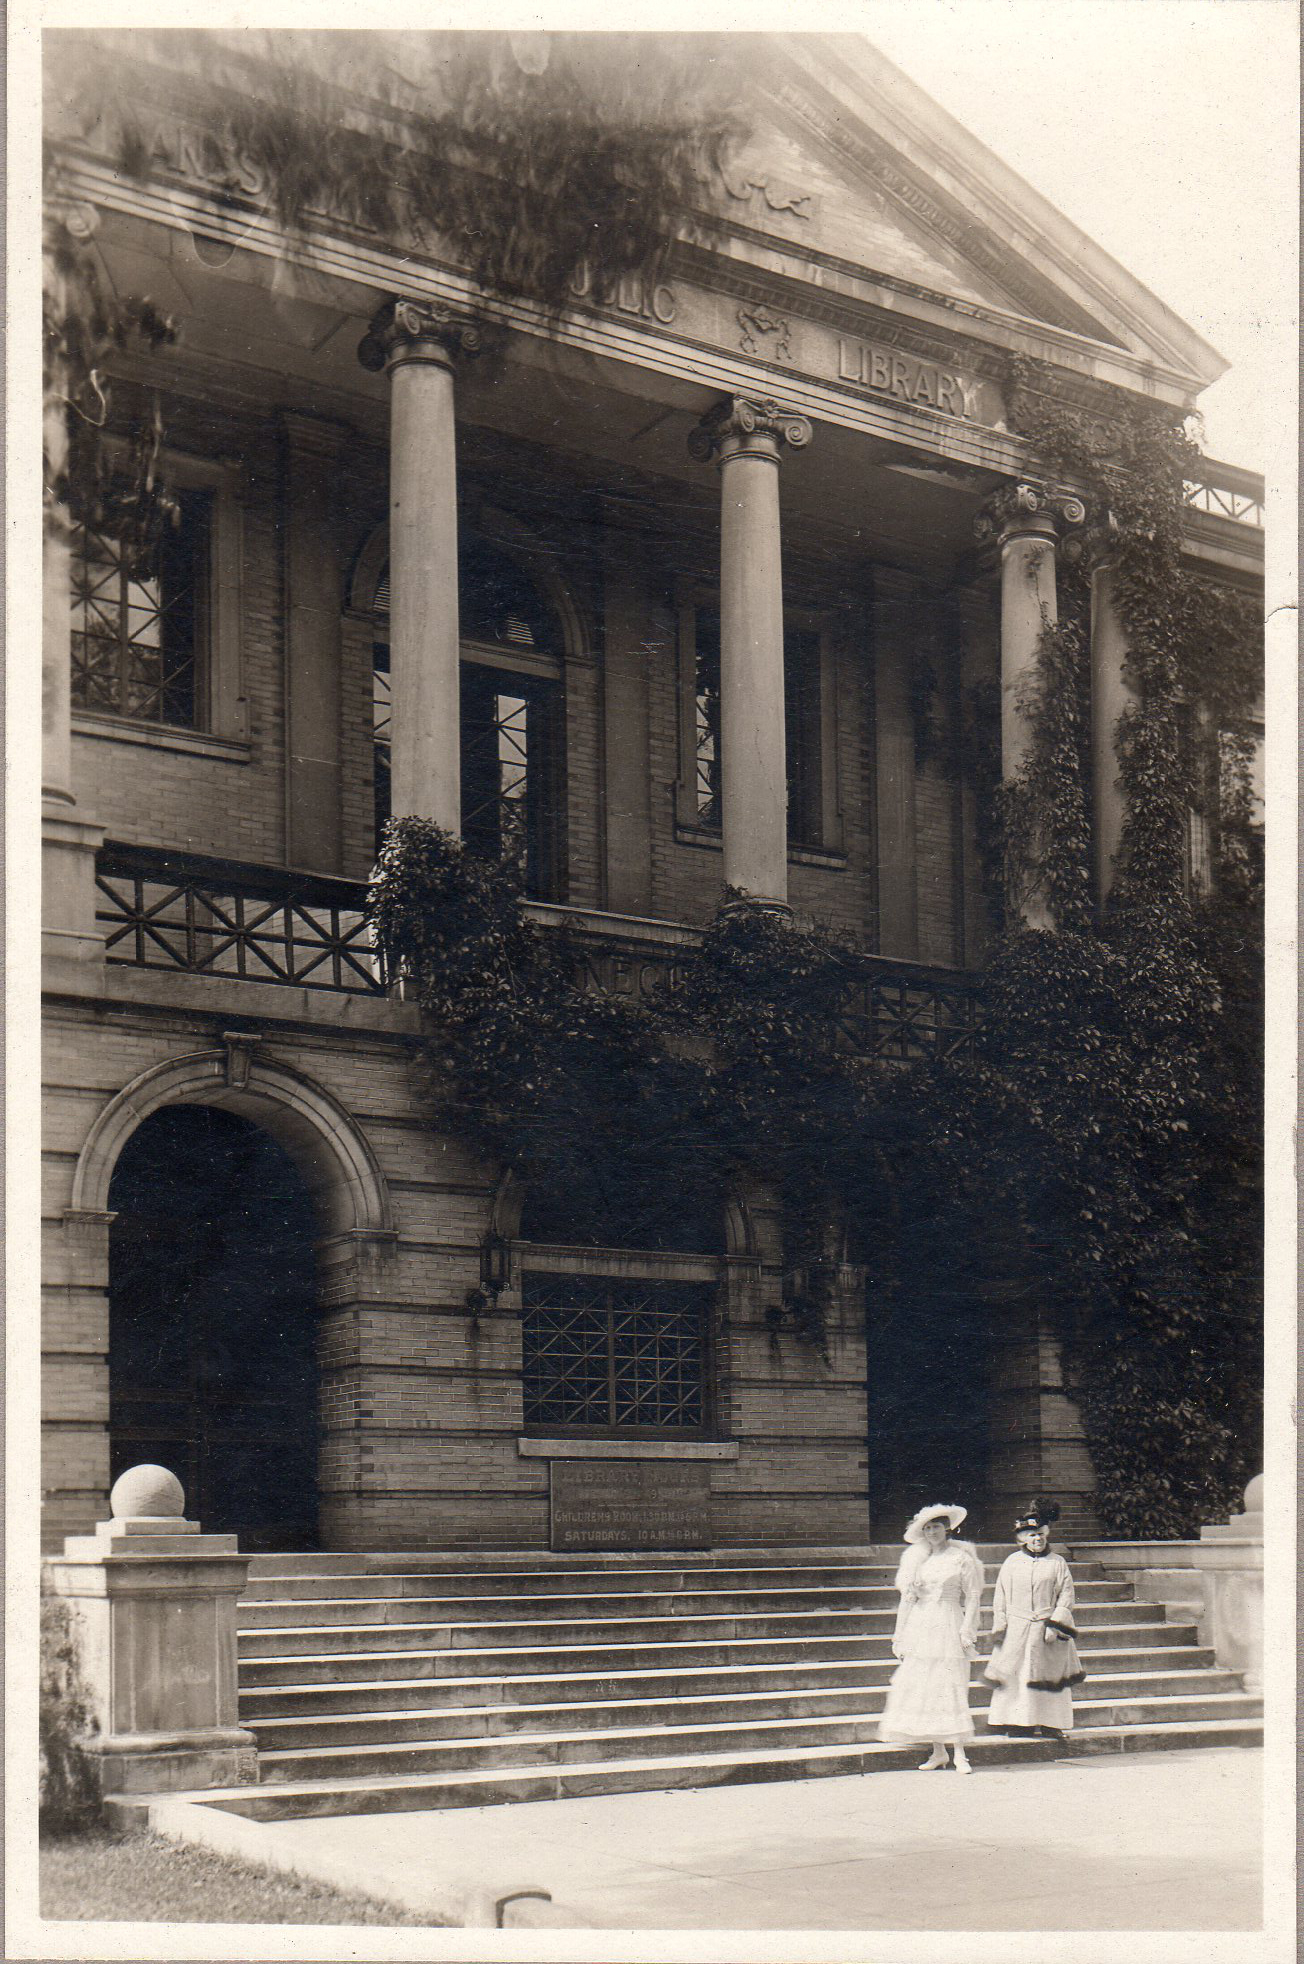 Two women in front of the library at the turn of the century